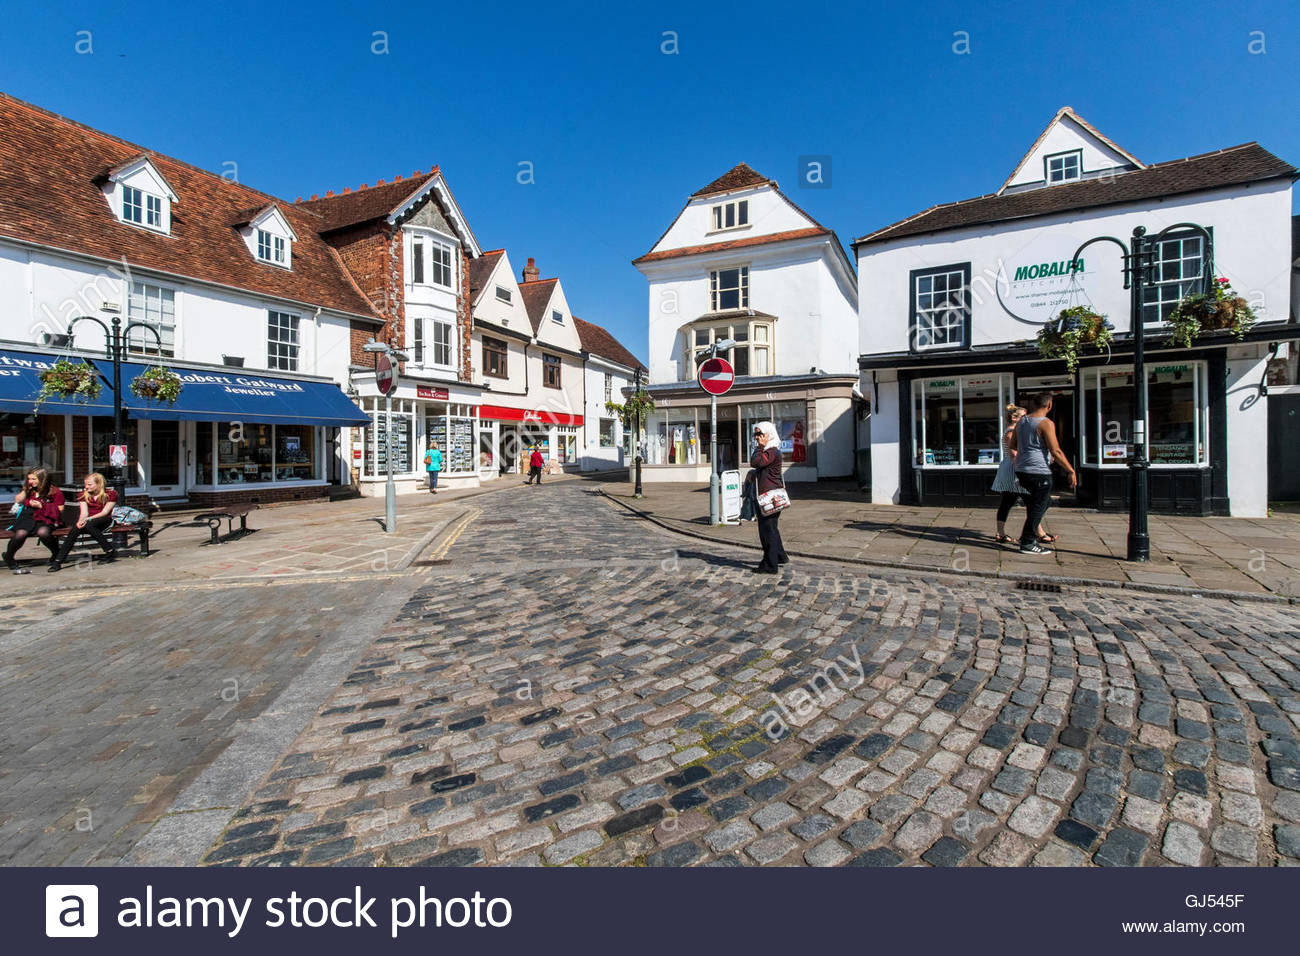 People going about their various activities town of Thame in Oxfordshire England - Stock Image